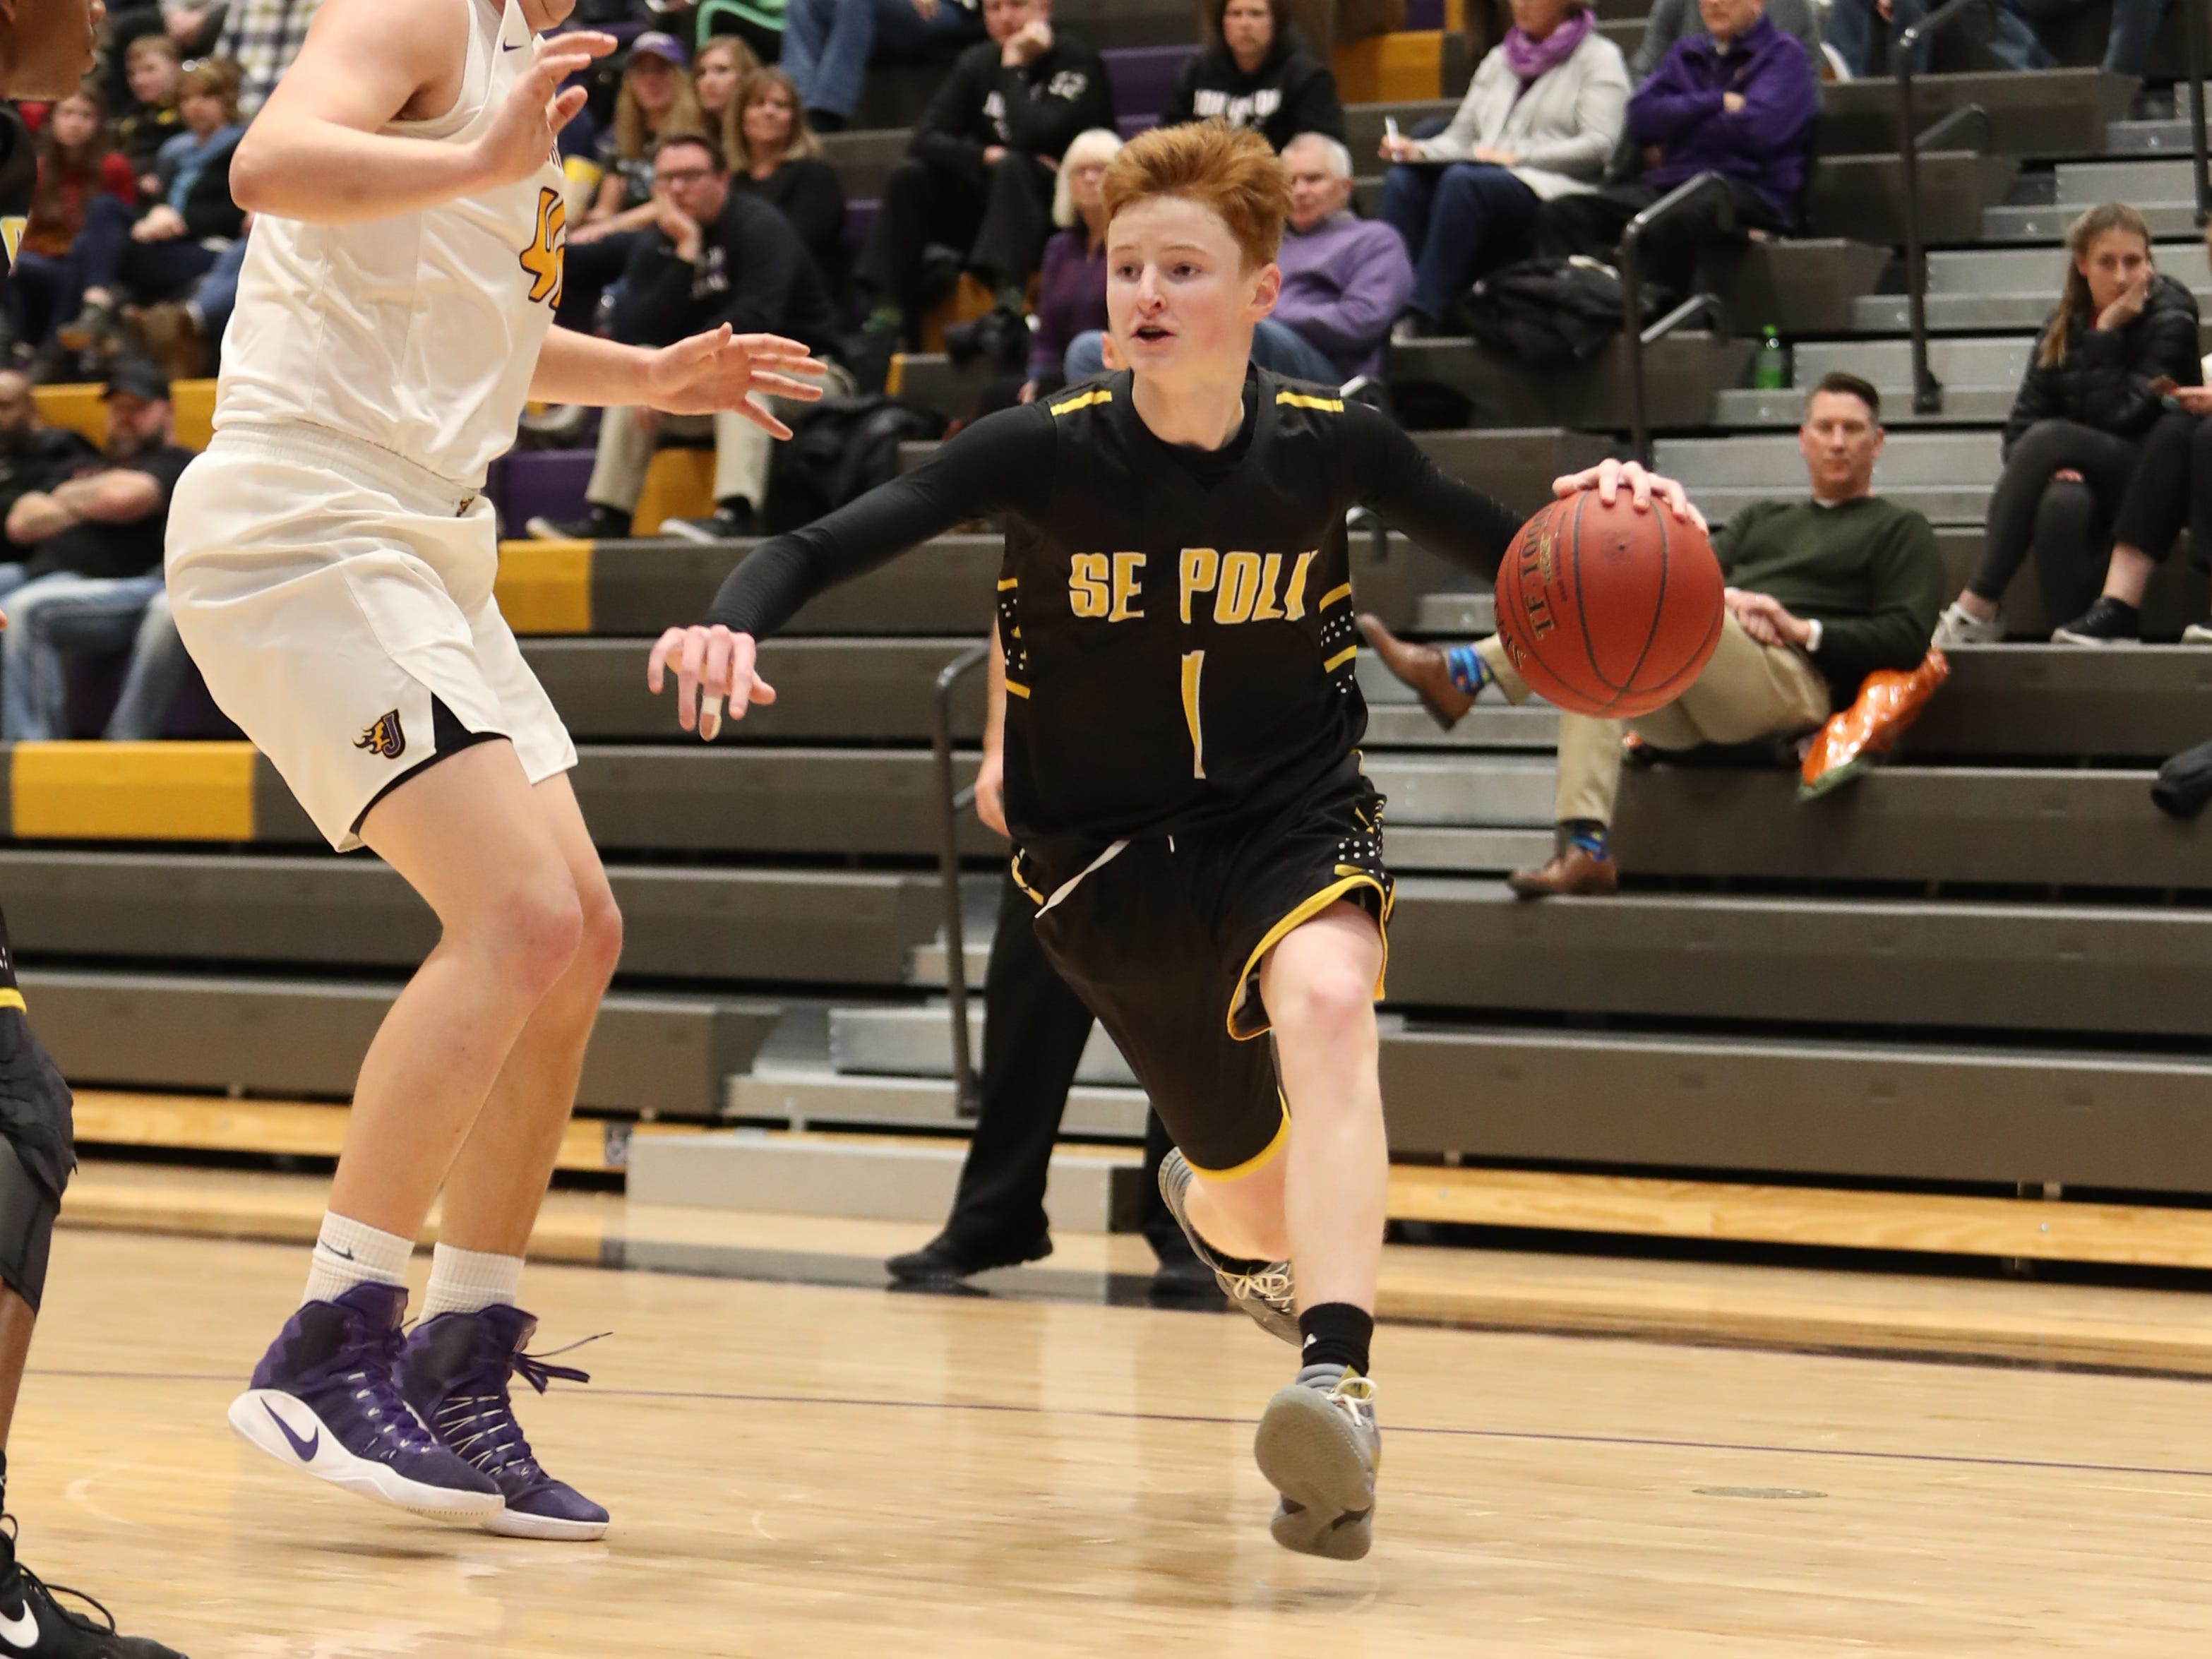 Southeast Polk's James Glenn (1) drives to the basket against the Dragons' defense Feb. 5 at Johnston High School. Glenn hit four 3-pointers for 16 points.